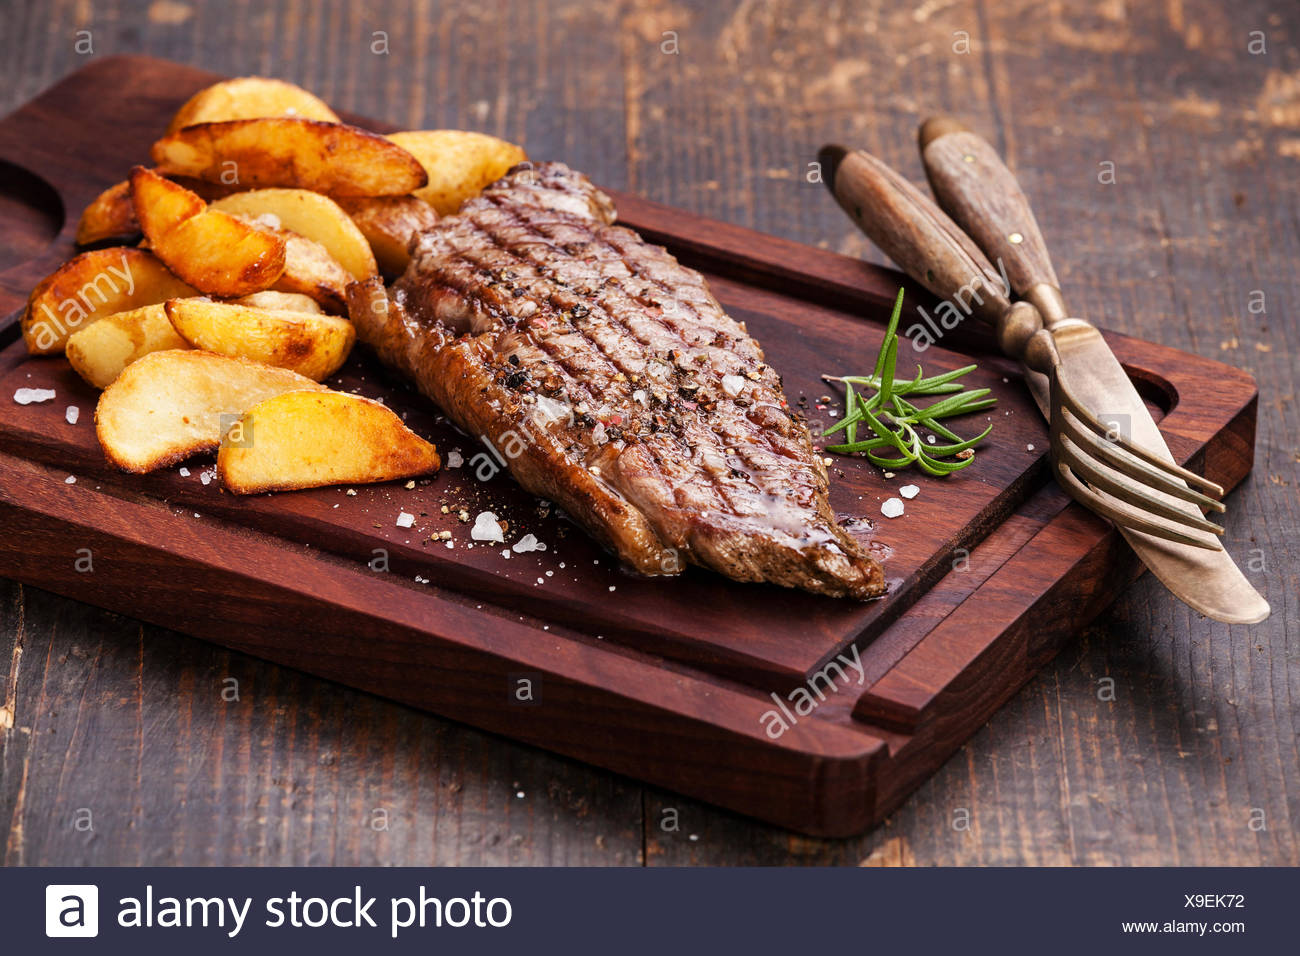 Well done grilled New York steak with roasted potato wedges on cutting board on dark wooden background - Stock Image